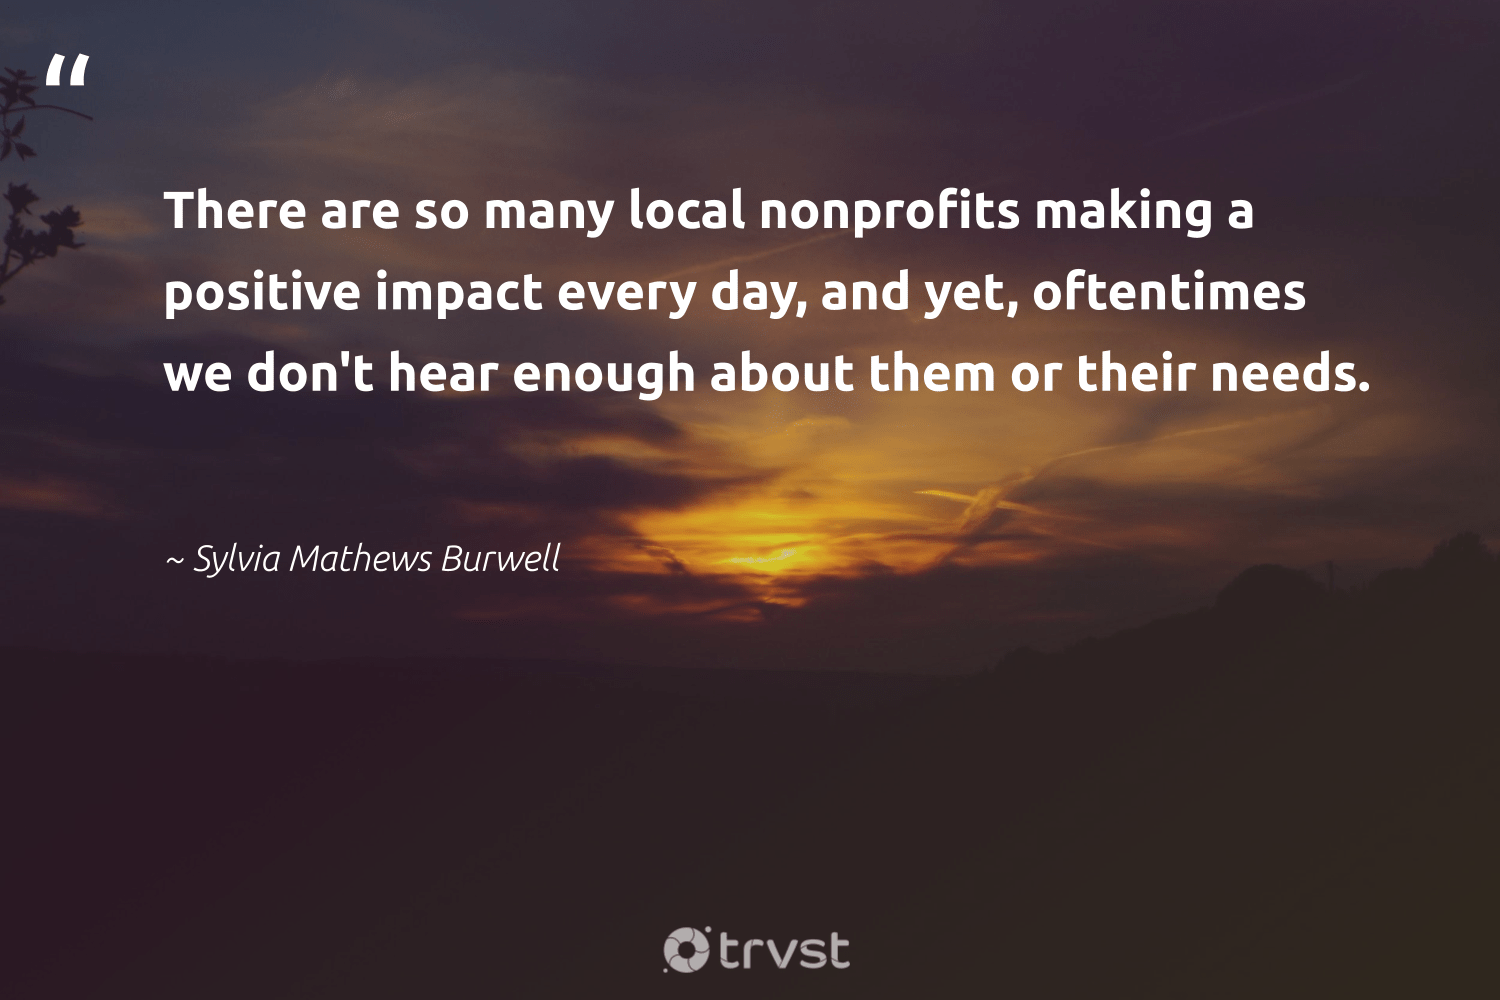 """""""There are so many local nonprofits making a positive impact every day, and yet, oftentimes we don't hear enough about them or their needs.""""  - Sylvia Mathews Burwell #trvst #quotes #impact #giveback #dosomething #communities #gogreen #dogood #beinspired #equalopportunity #thinkgreen #workingtogether"""